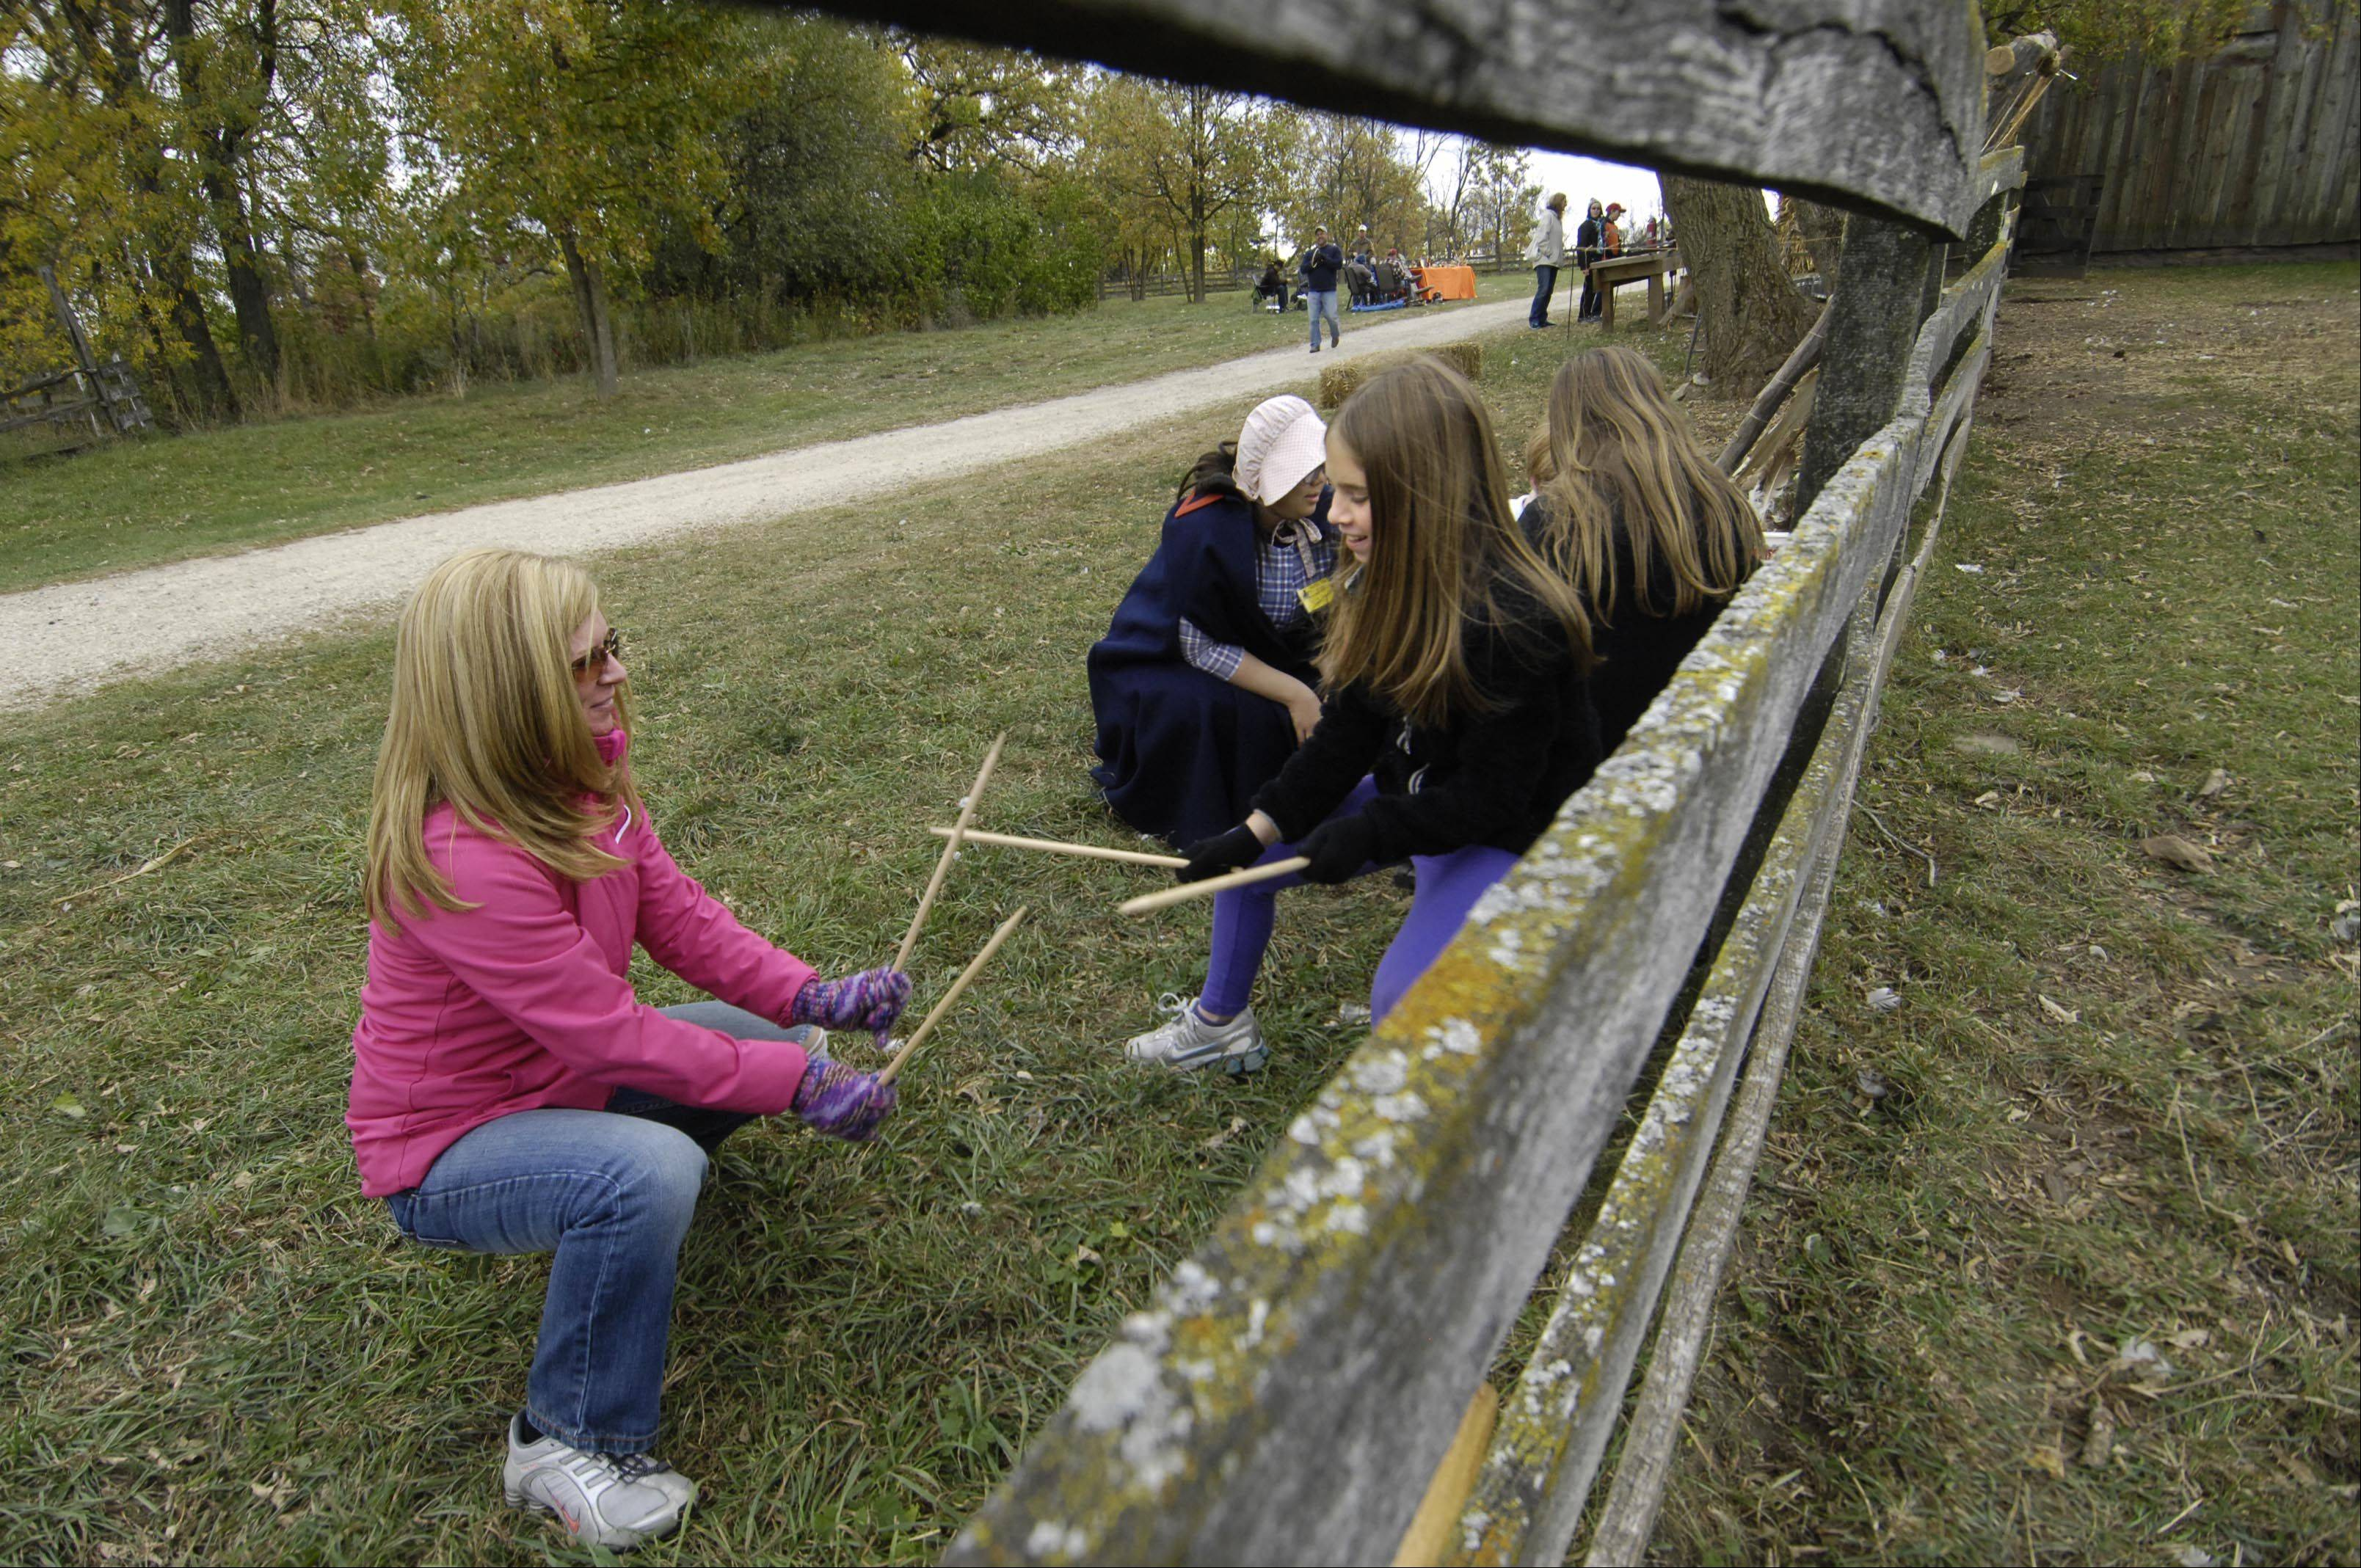 Kim McLaughlin plays an old fashioned game with her daughter Riley, 10, at Sunday's Fall Festival and 35th anniversary of the Garfield Farm Living History Museum and working farm west of Geneva.